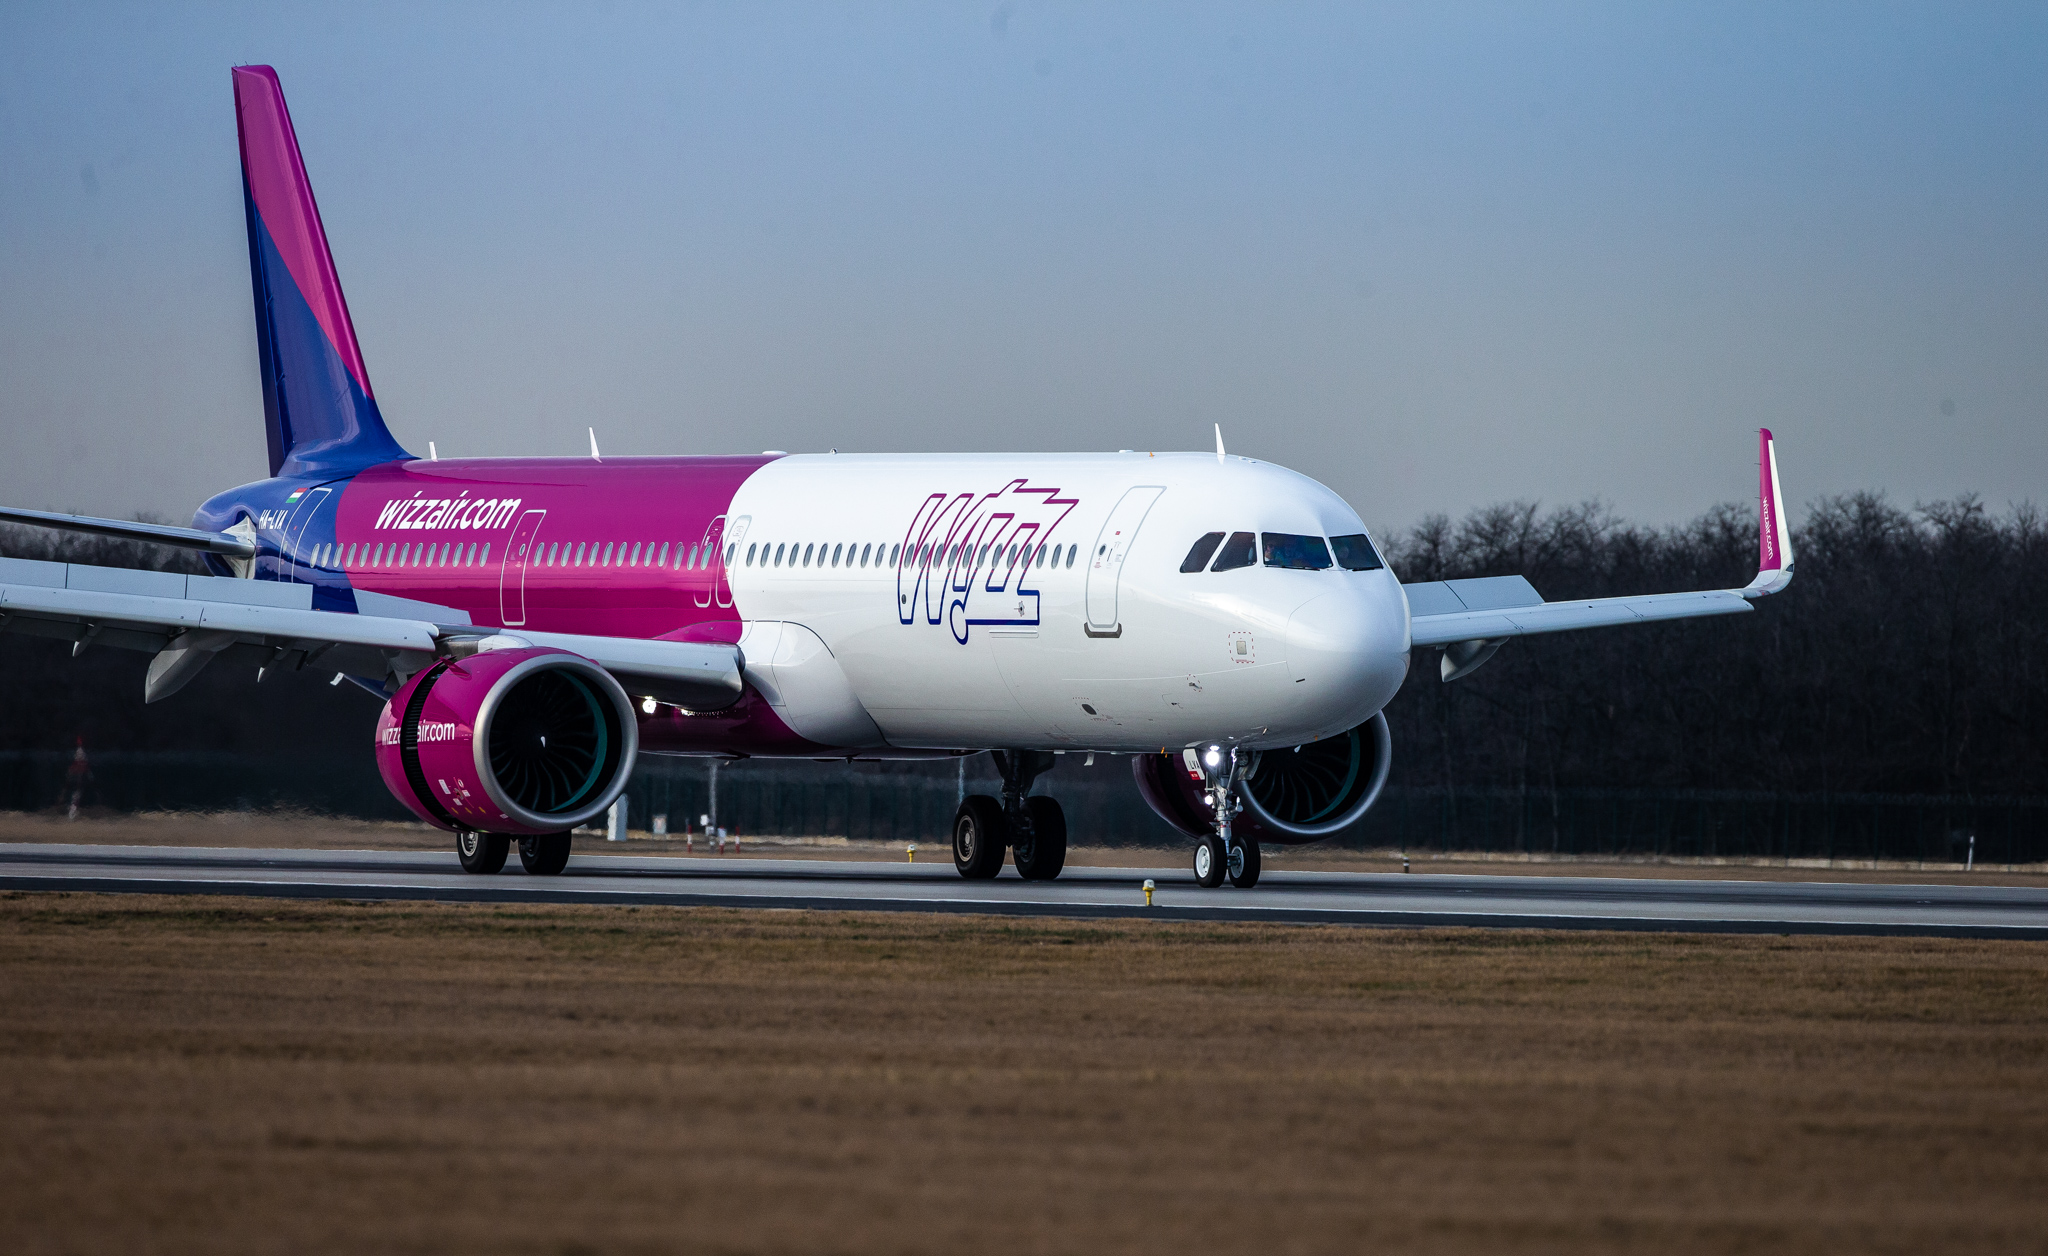 Wizz Air Hungary is the first airline to acquire an EASA operator certificate